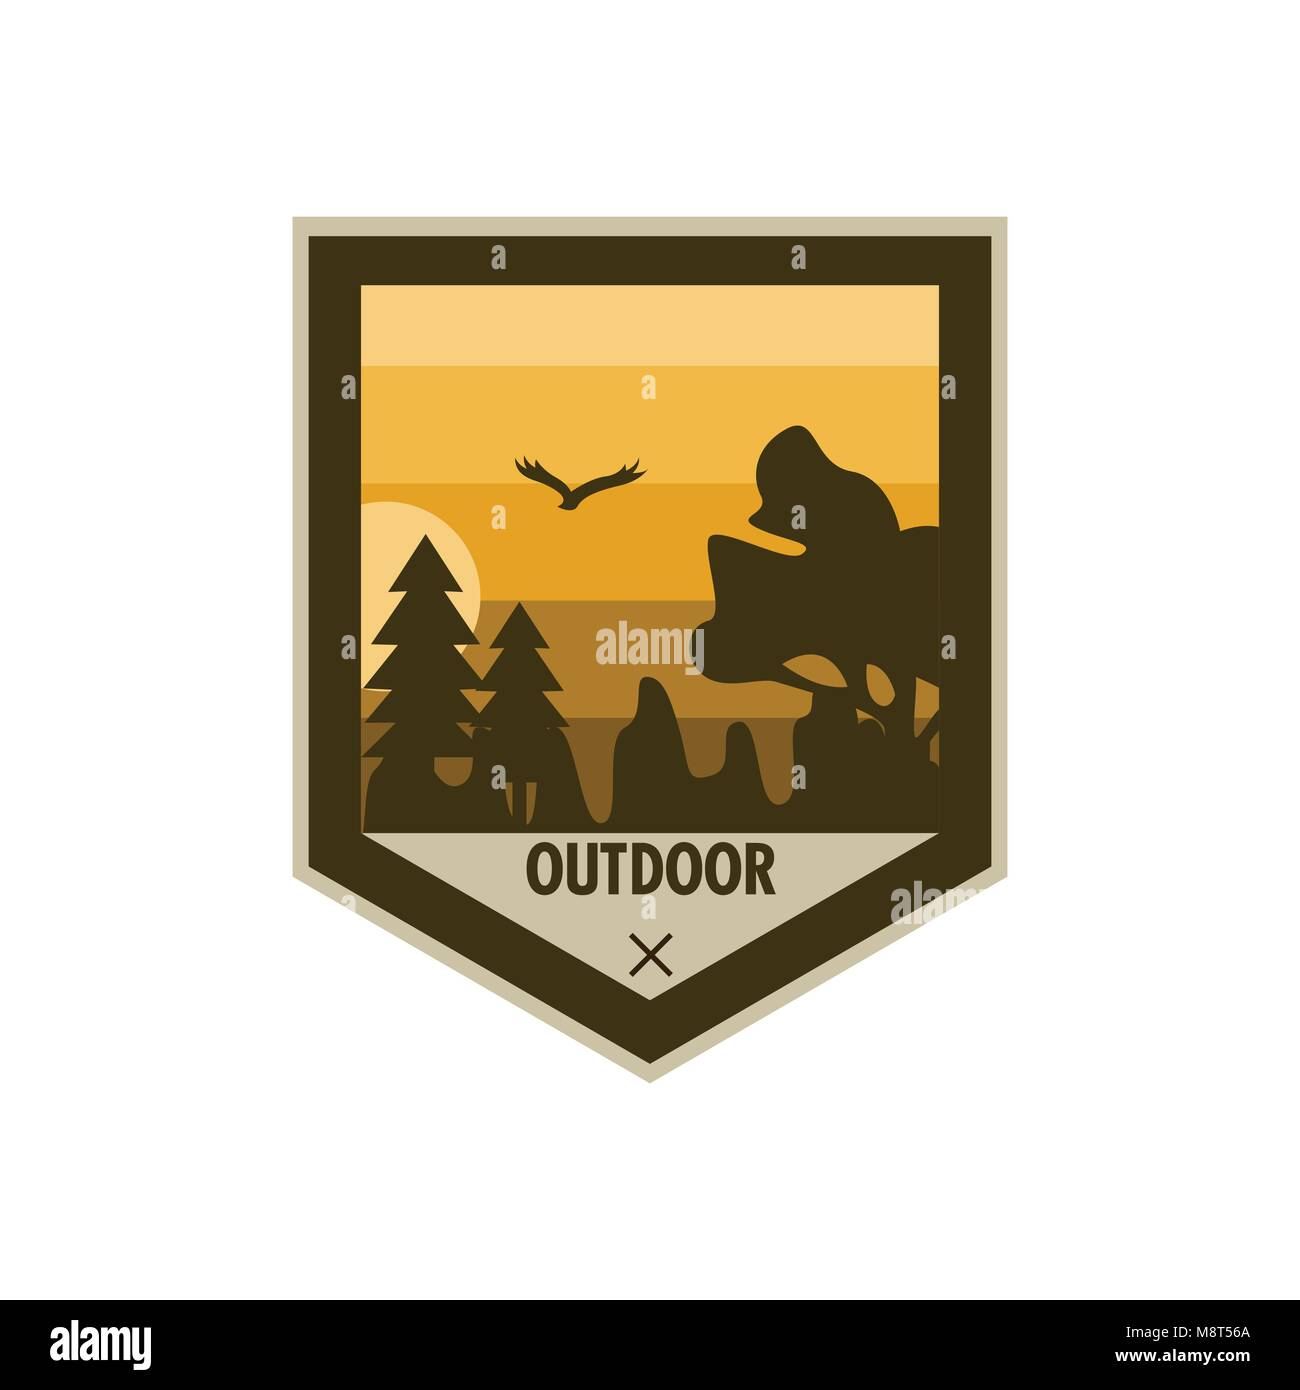 Outdoor Edgy Shield Adventure Badge Vector Illustration Graphic Design - Stock Vector